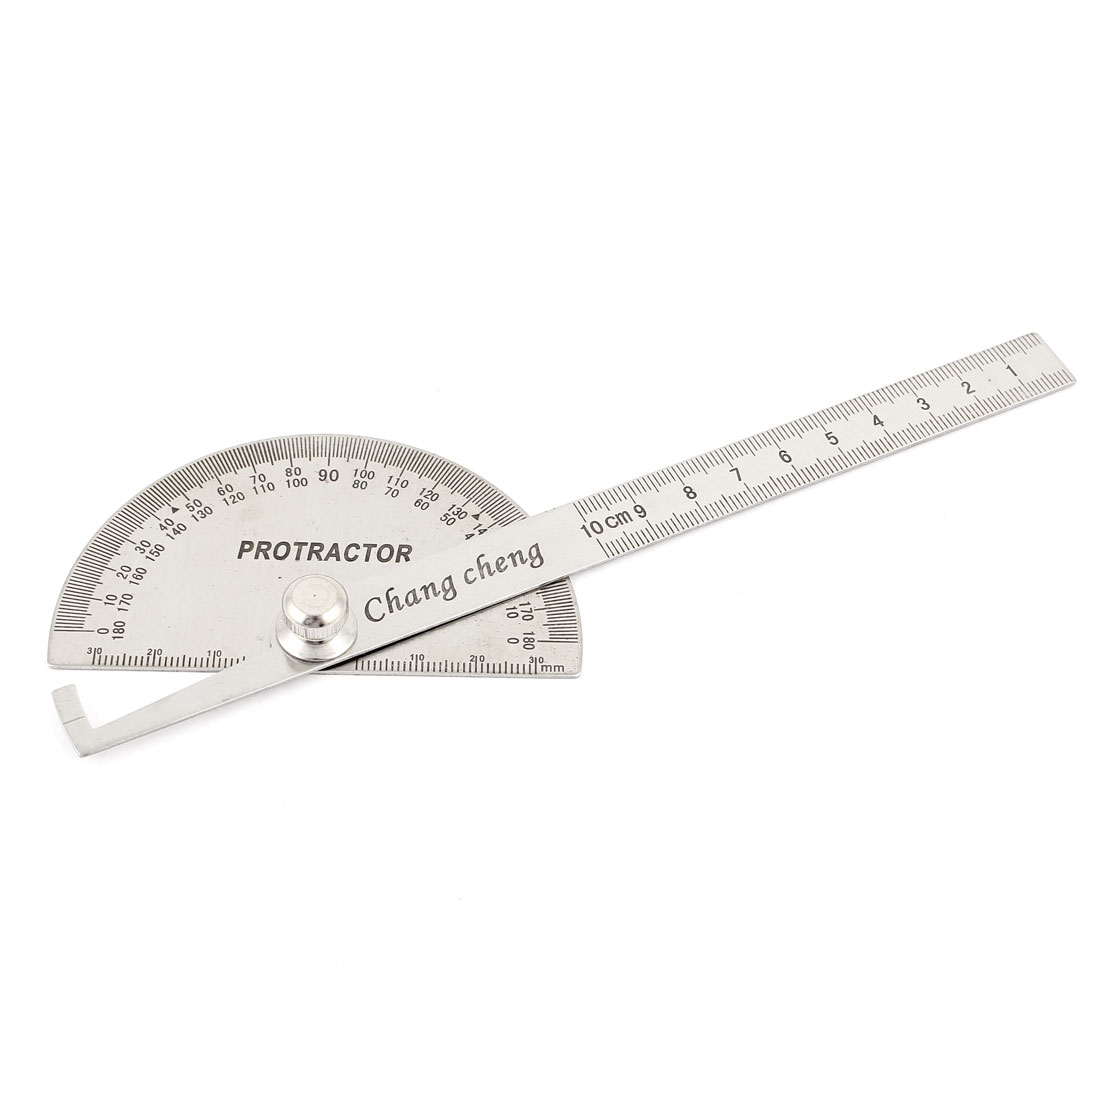 Stainless Steel Round Head Rotary Protractor Angle Ruler Measuring Tool for Student Carpenter Architect